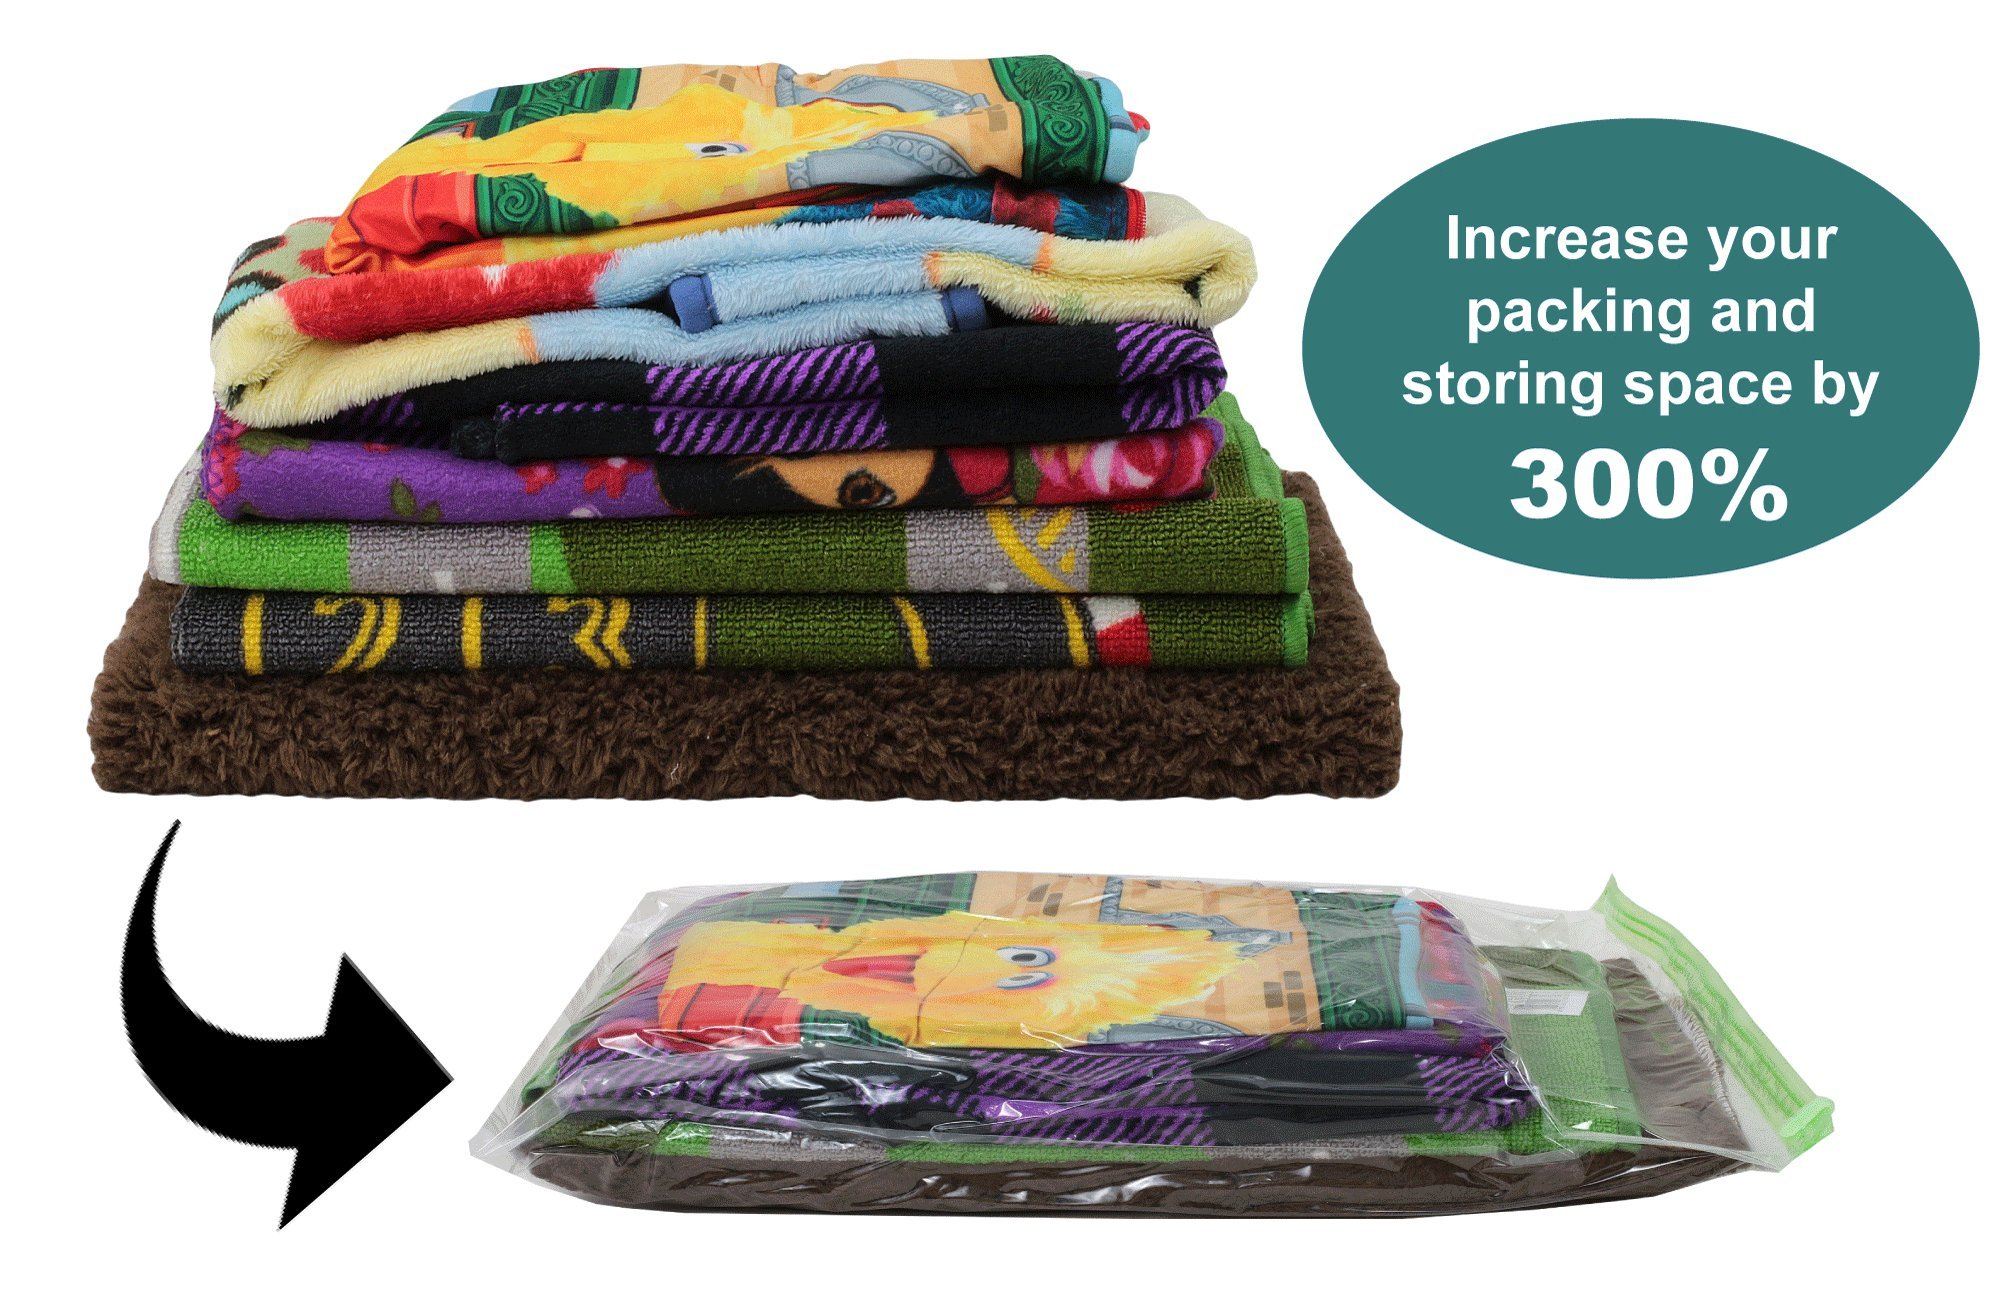 Acrodo Space Saver Packing Bags for Travel - 10-pack Rolling Compression Bags for Clothing by Acrodo (Image #2)